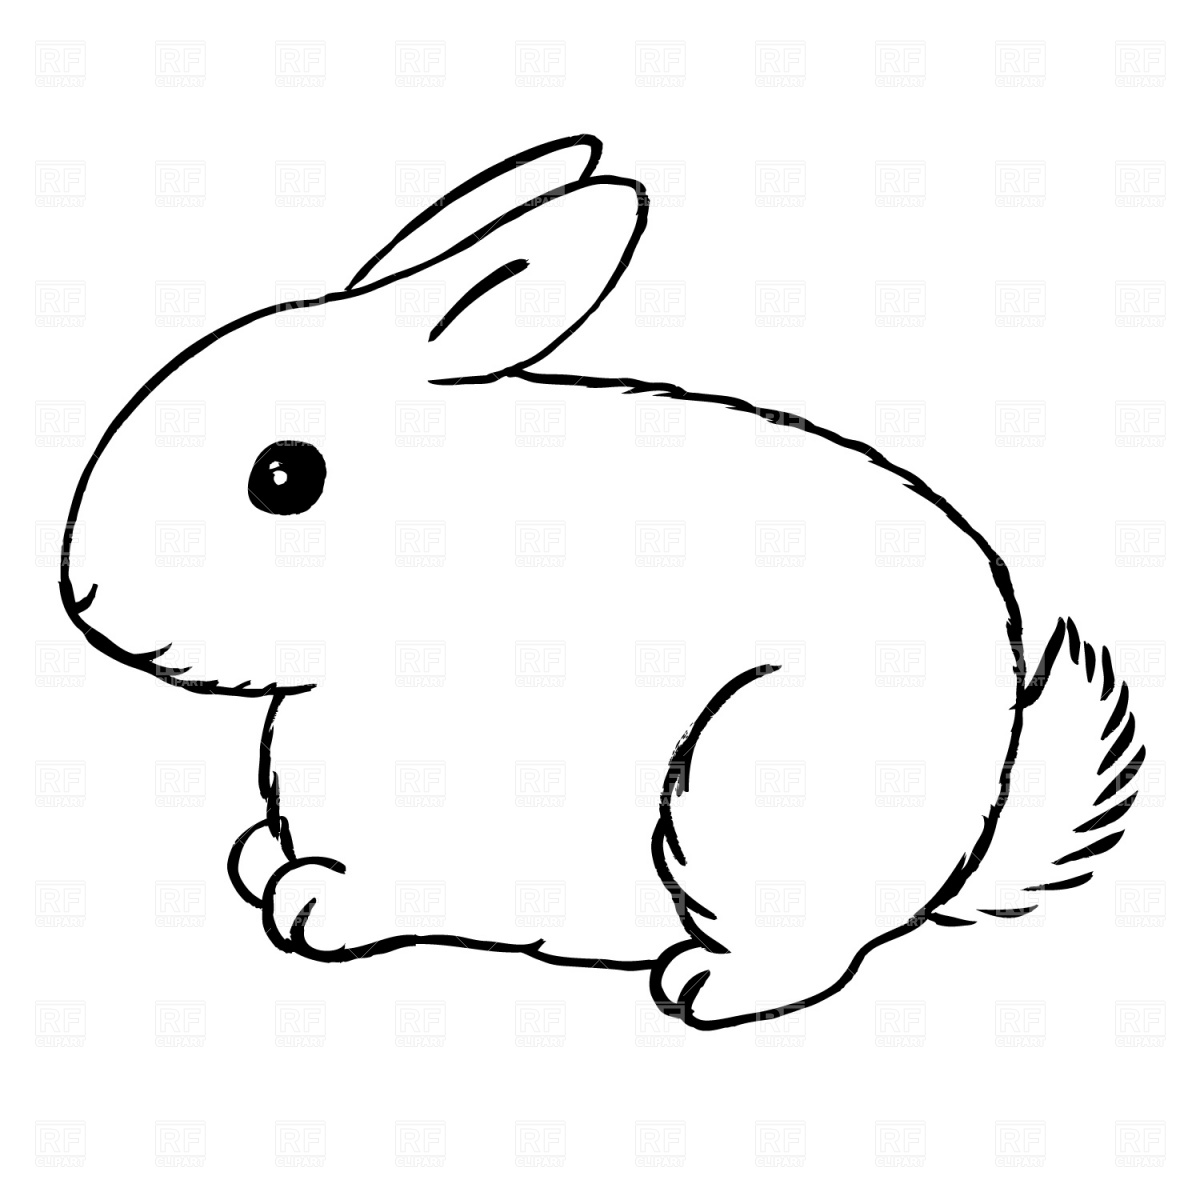 Bunny Black And White Clipart - Clipart Kid